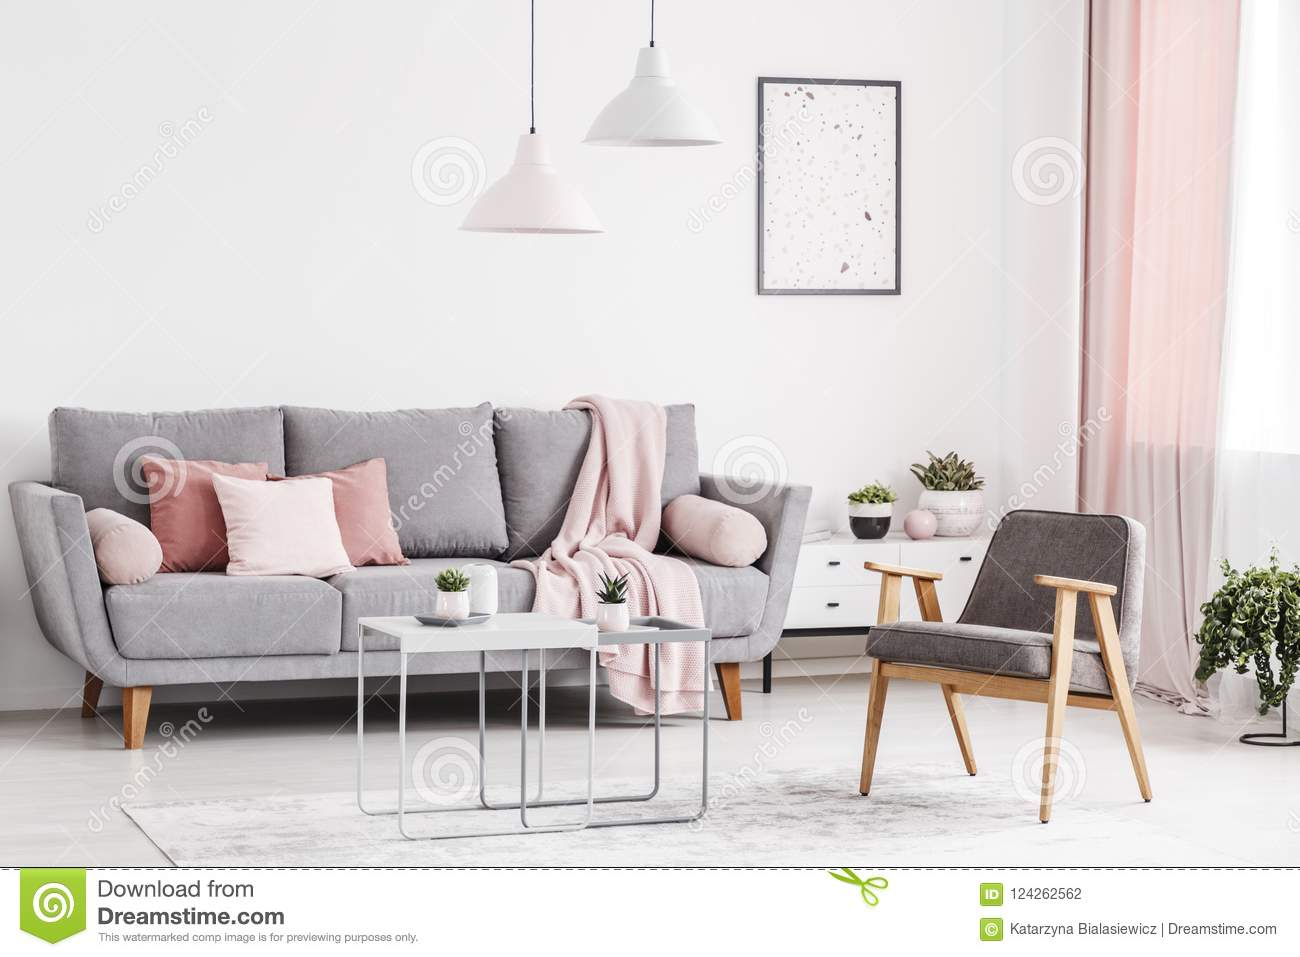 retro living room coffee table design ideas brown leather couch armchair grey sofa with pink pillows and tables in an elegant interior real photo concept